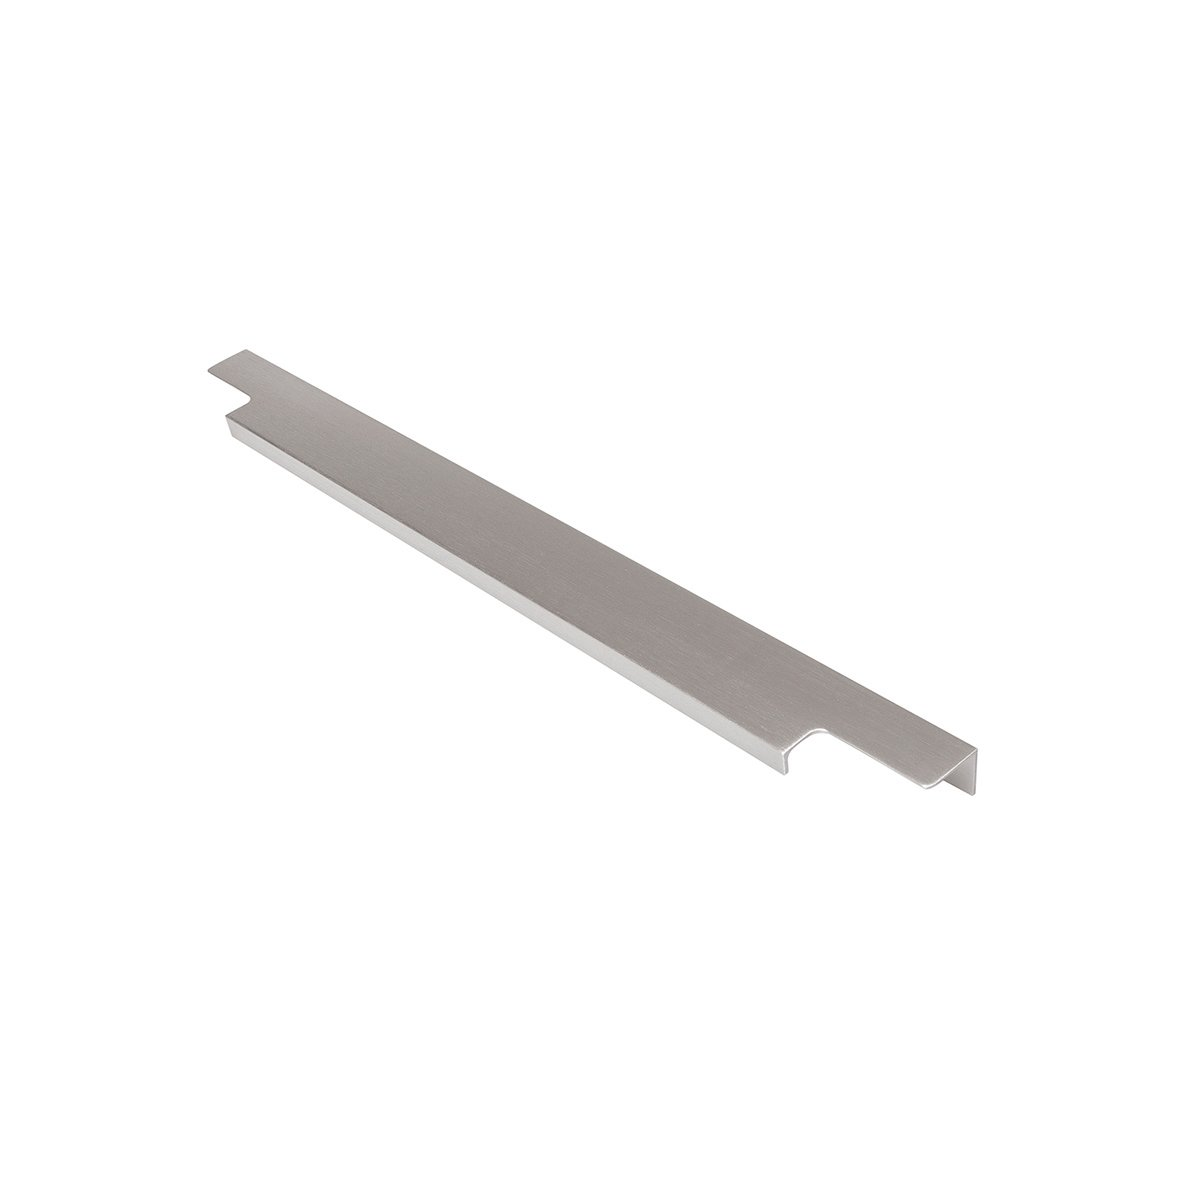 Hickory Hardware C02H075746-AL Austere Lip Pull Aluminum Finish, Sold in Pairs Austere Lip Pull Finish, Sold in Pairs